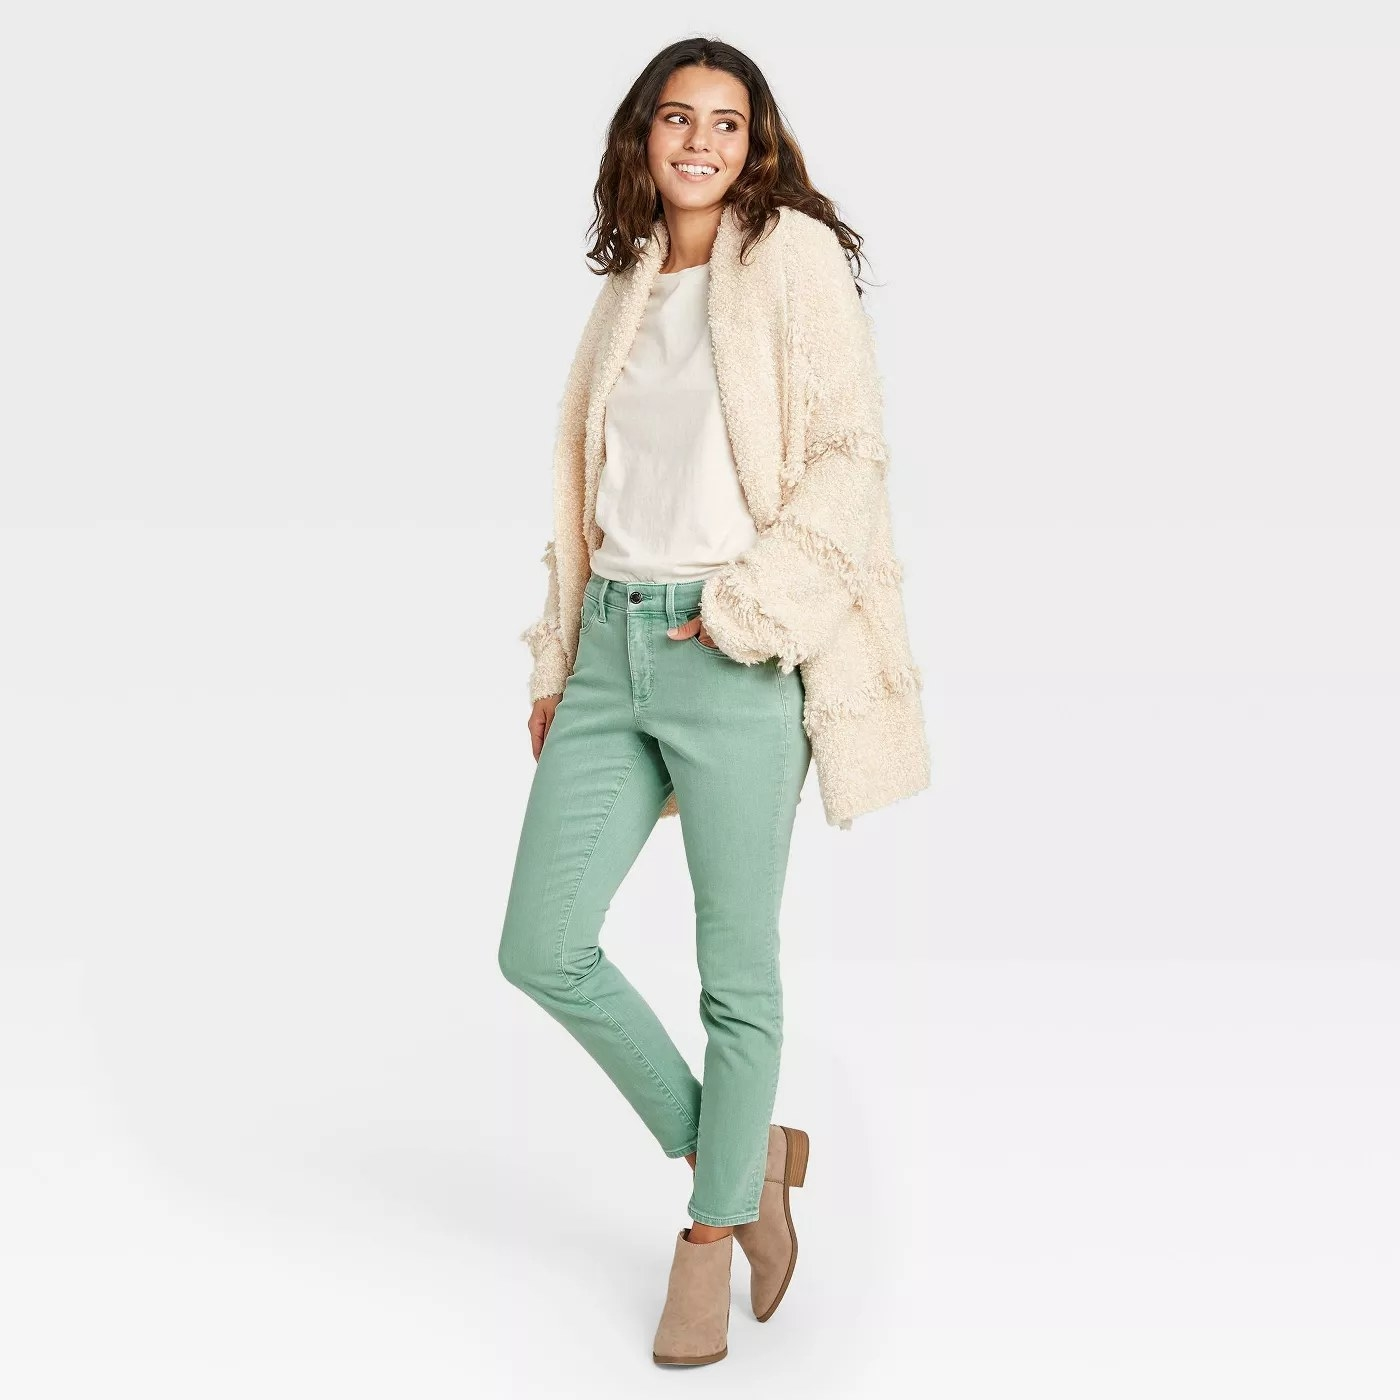 The green jeans